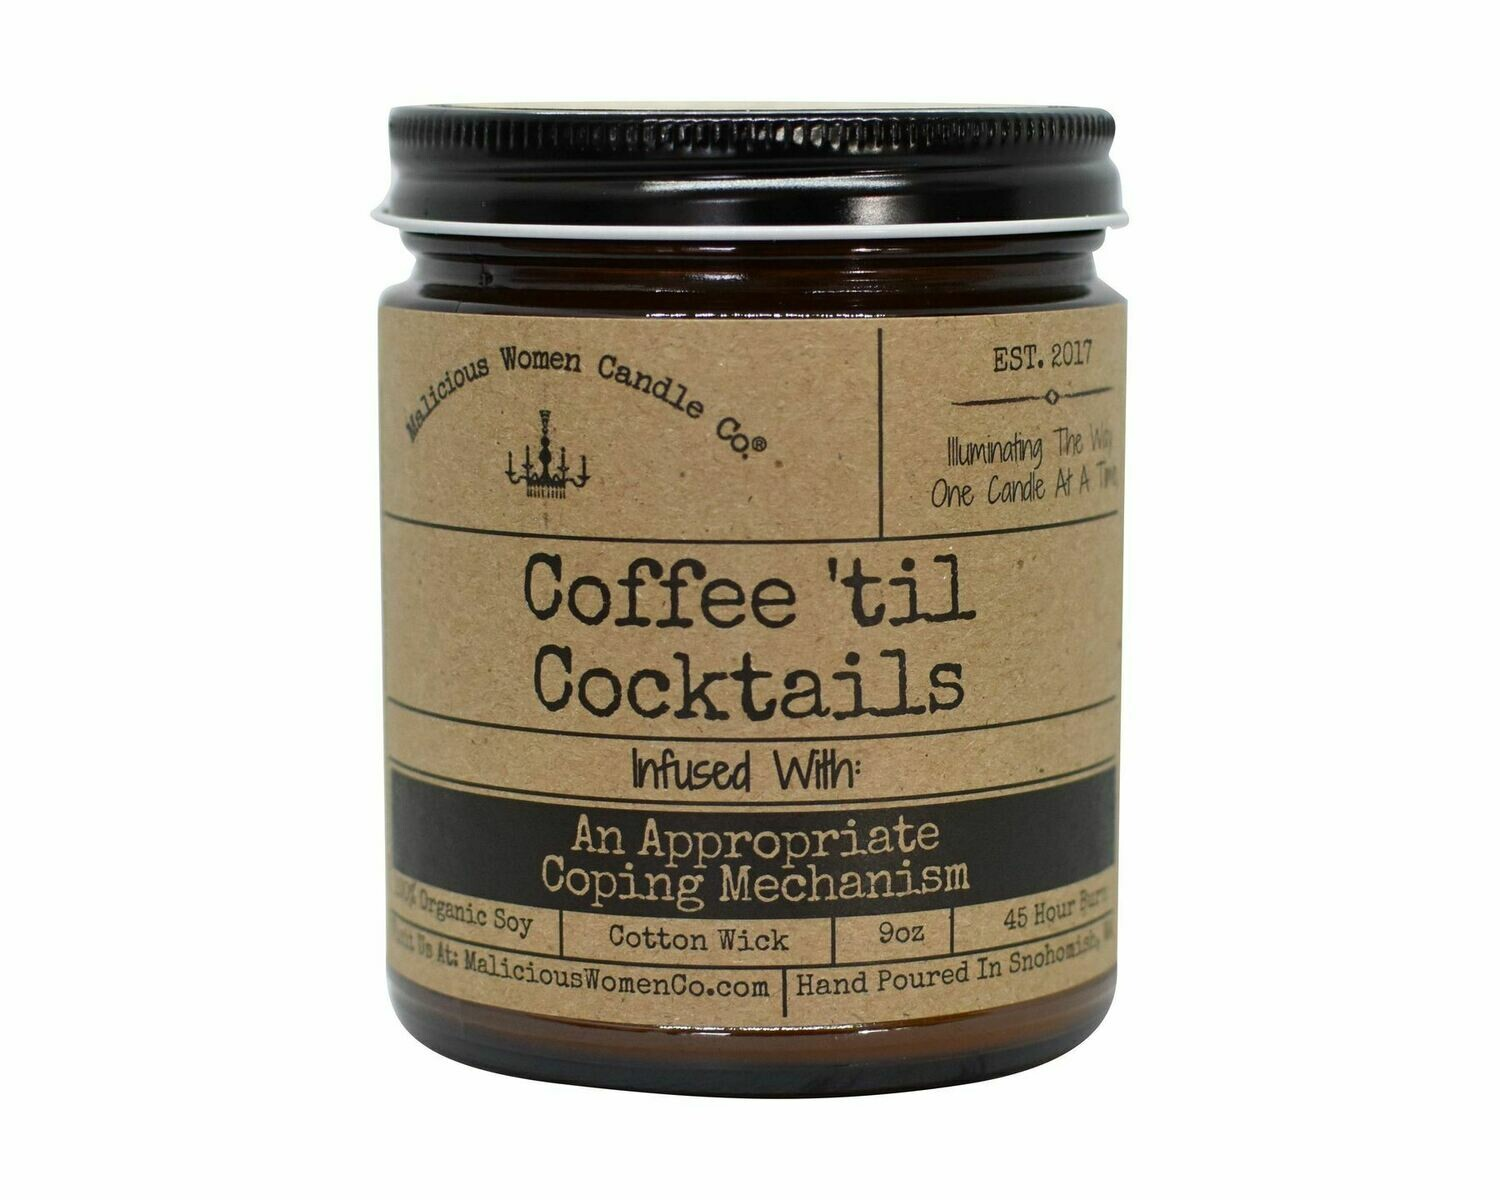 Malicious Women COFFEE TIL CONCKTAILS candle